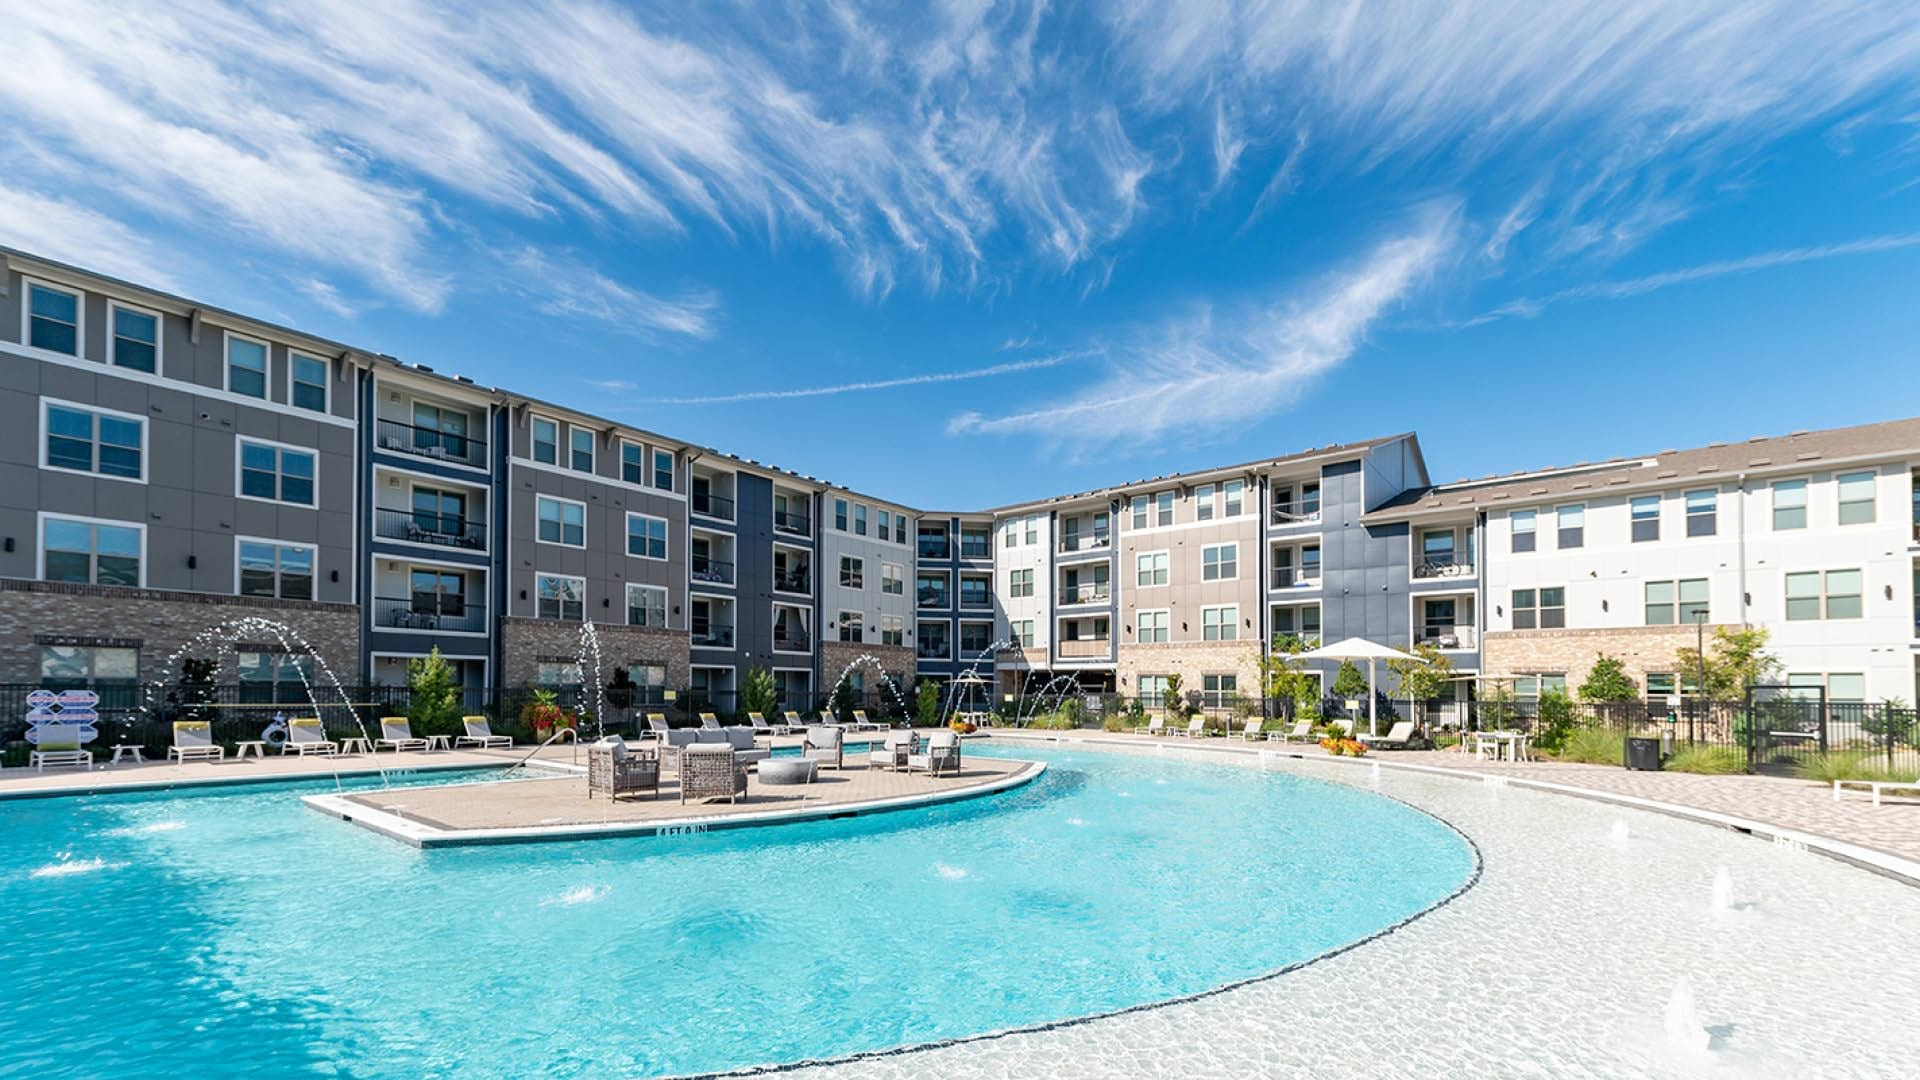 Resort-style pool at our luxury apartments in Allen, TX